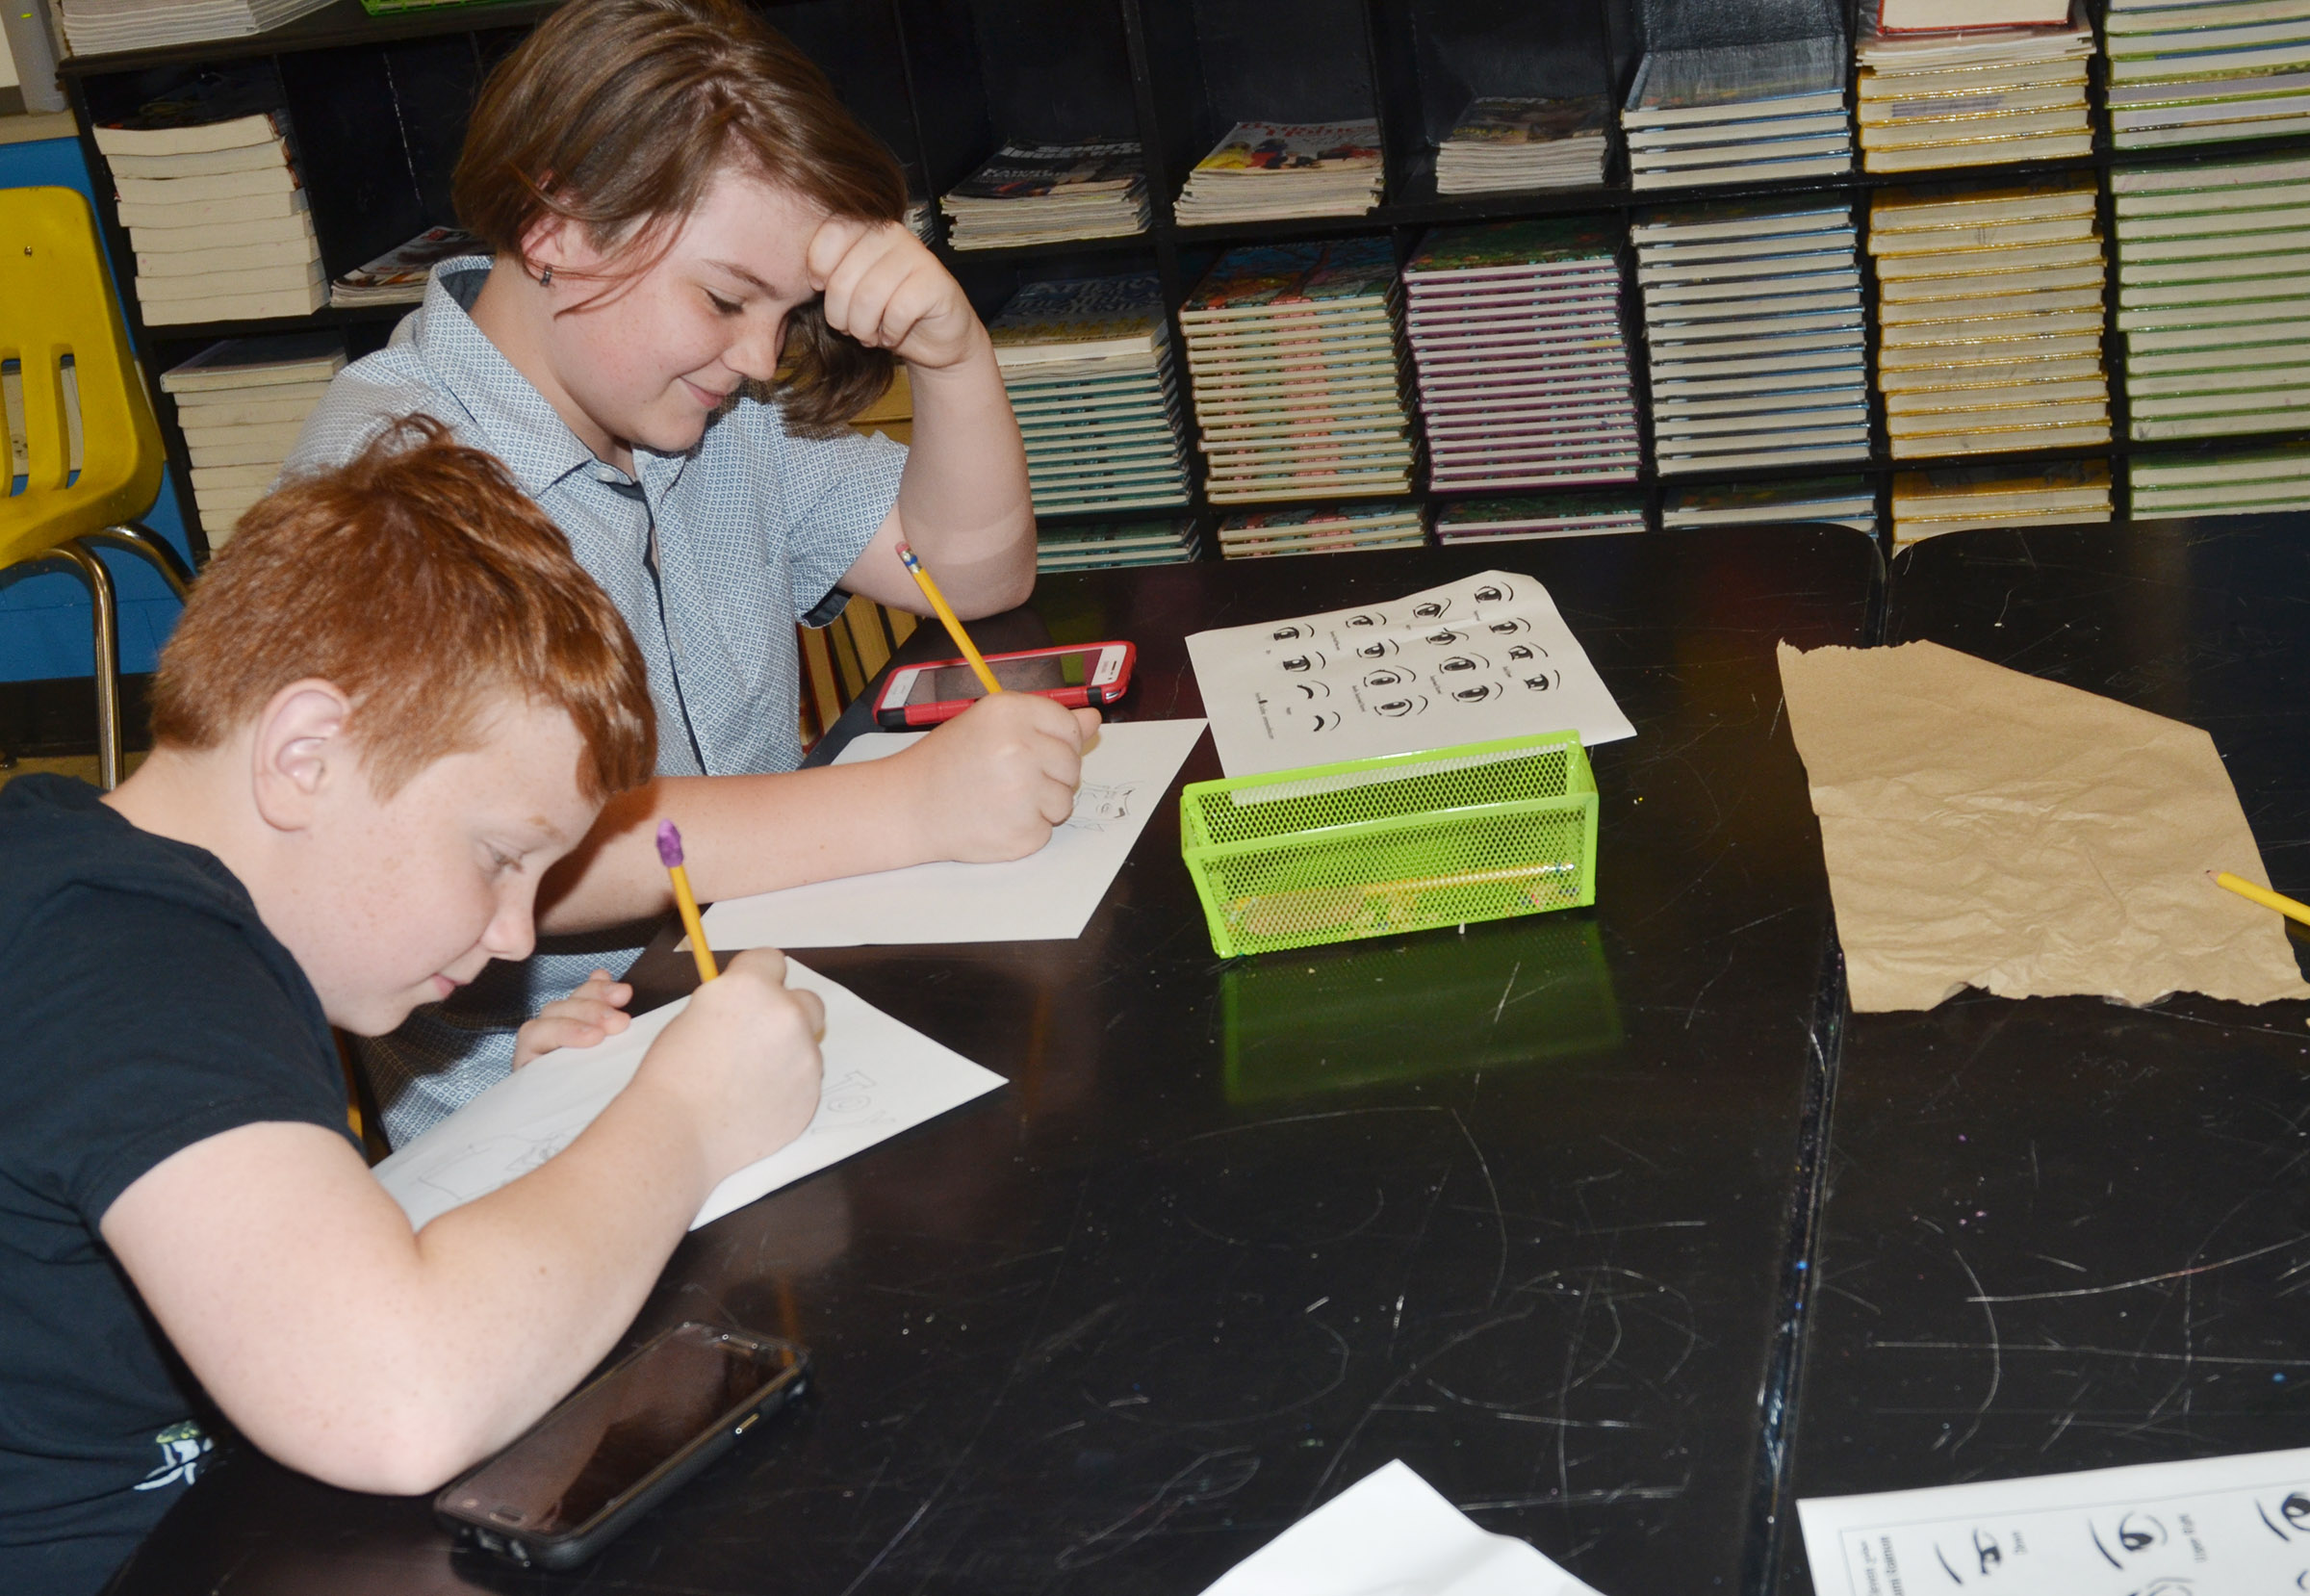 CMS sixth-graders Conner Rinehart, at left, and Kayden Birdwell draw during their Sharpen the Saw time.